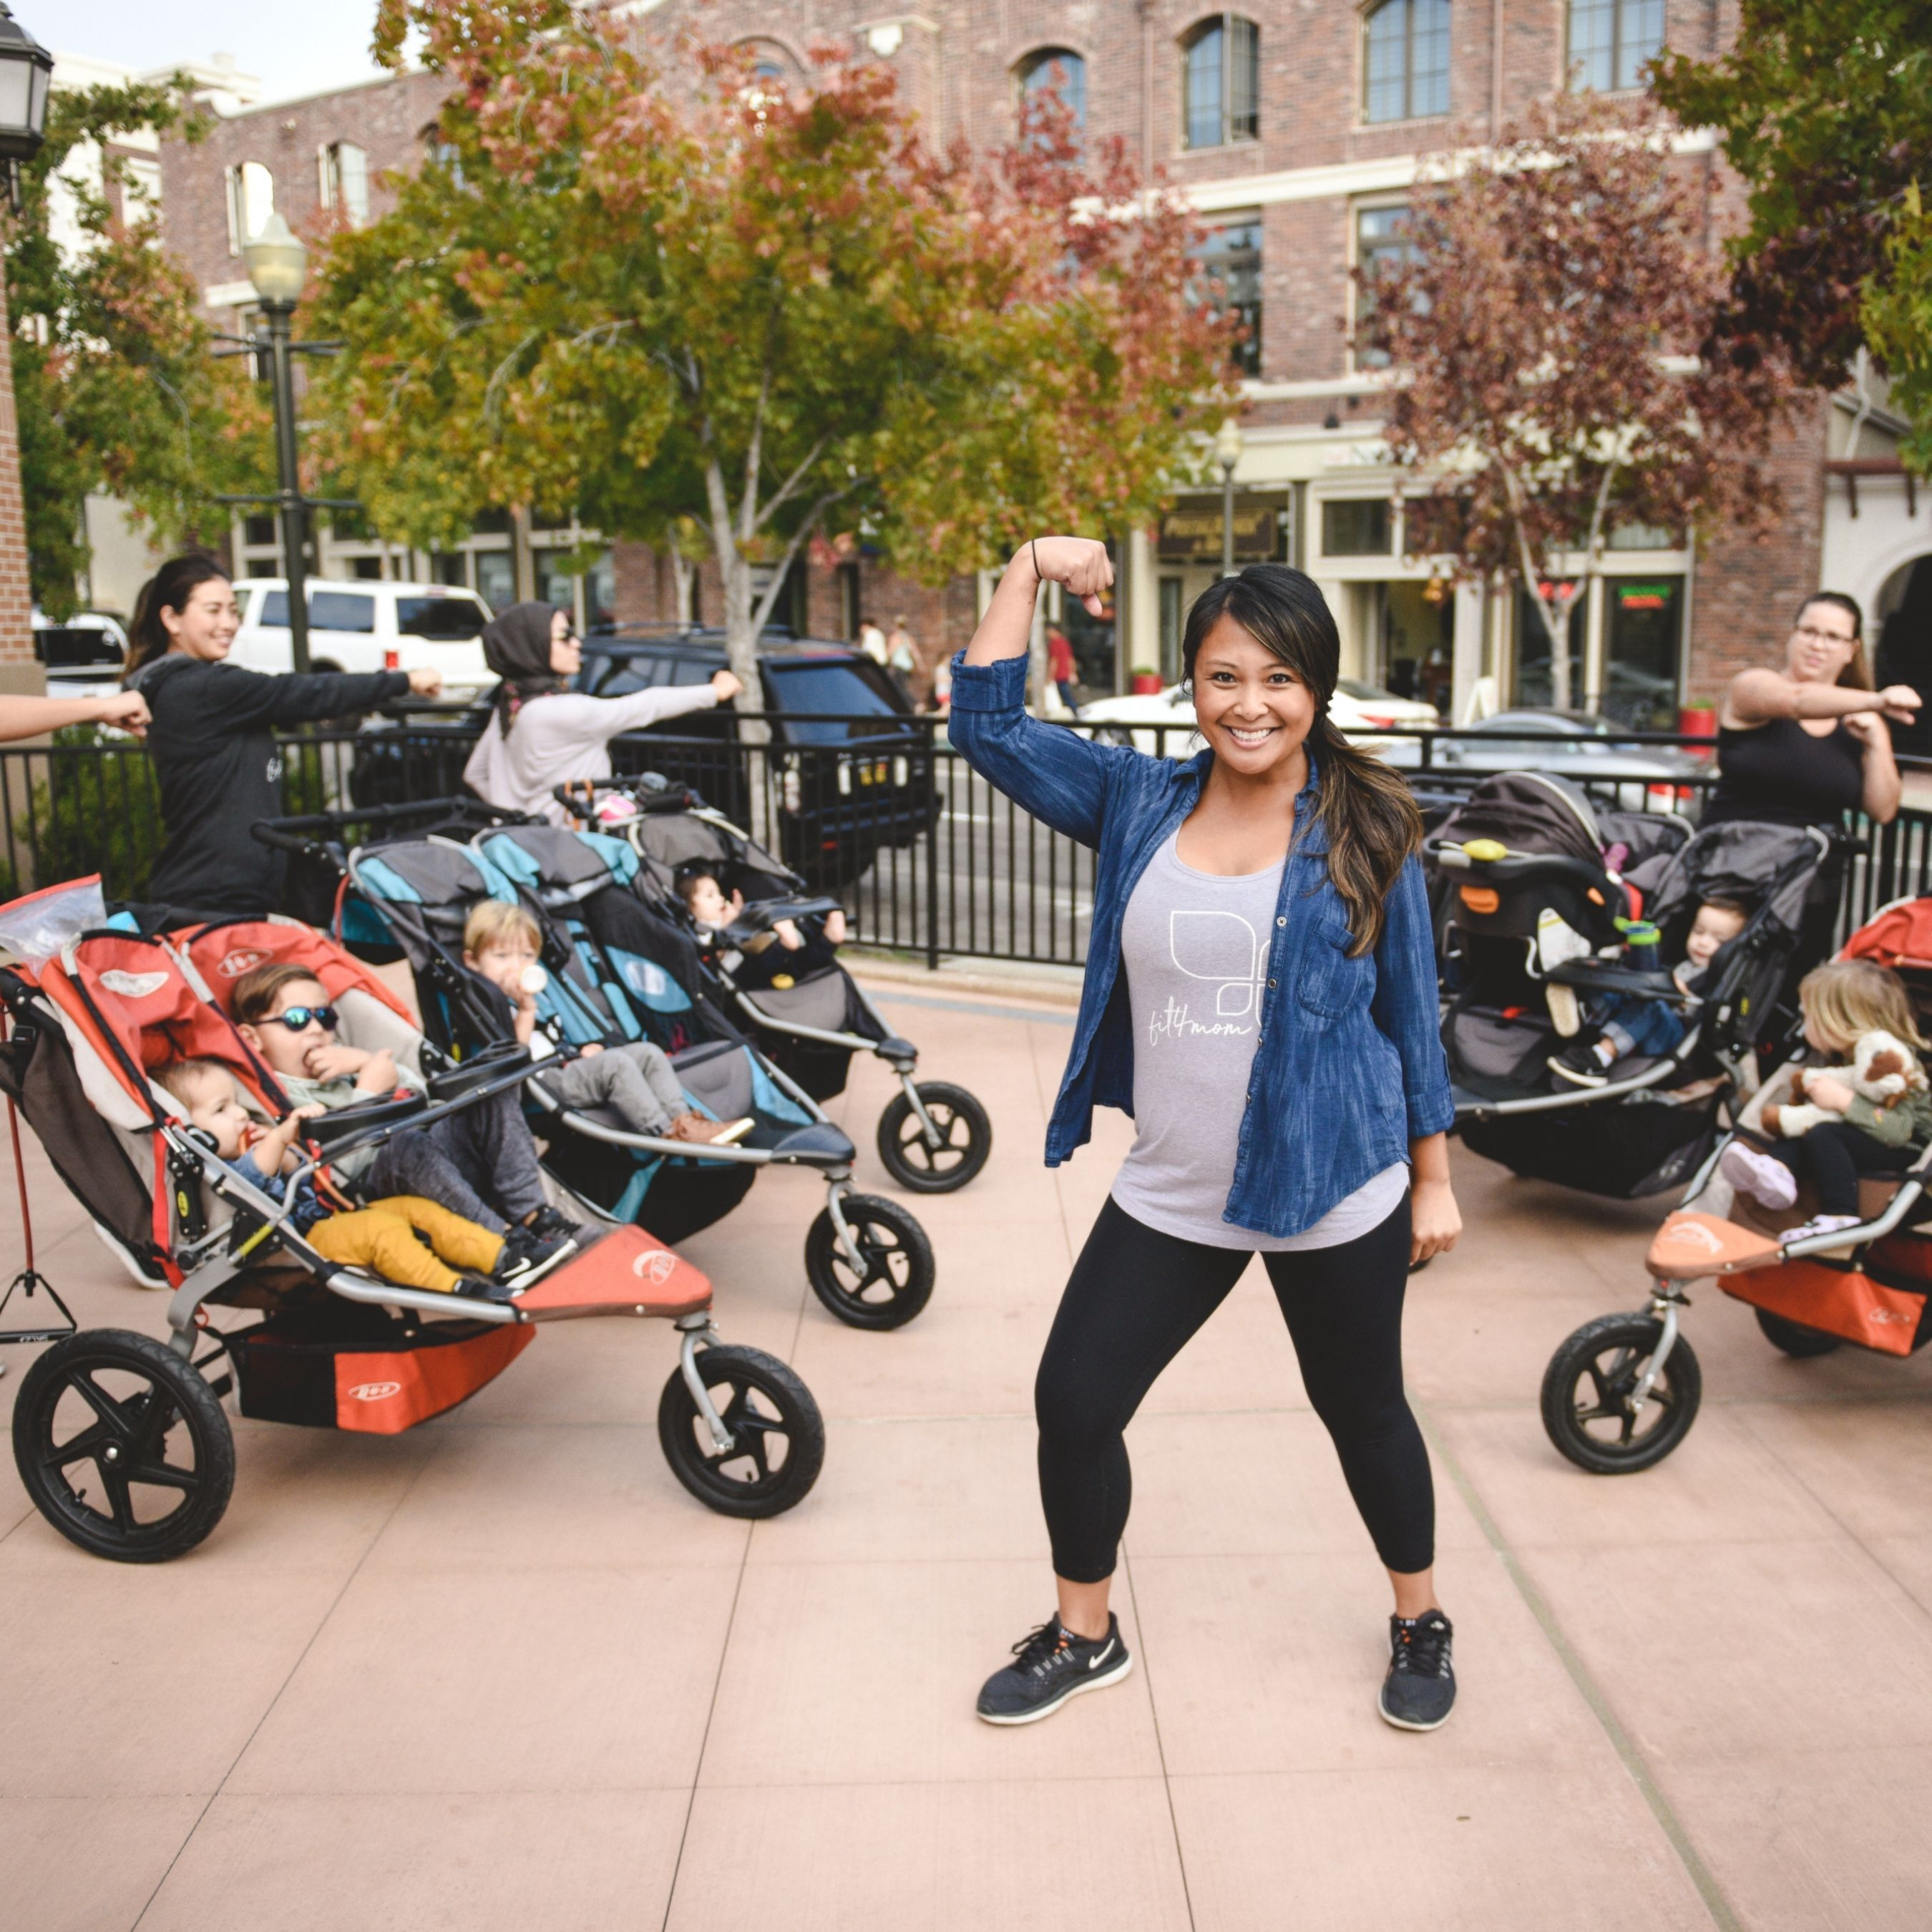 Need a stroller workout?